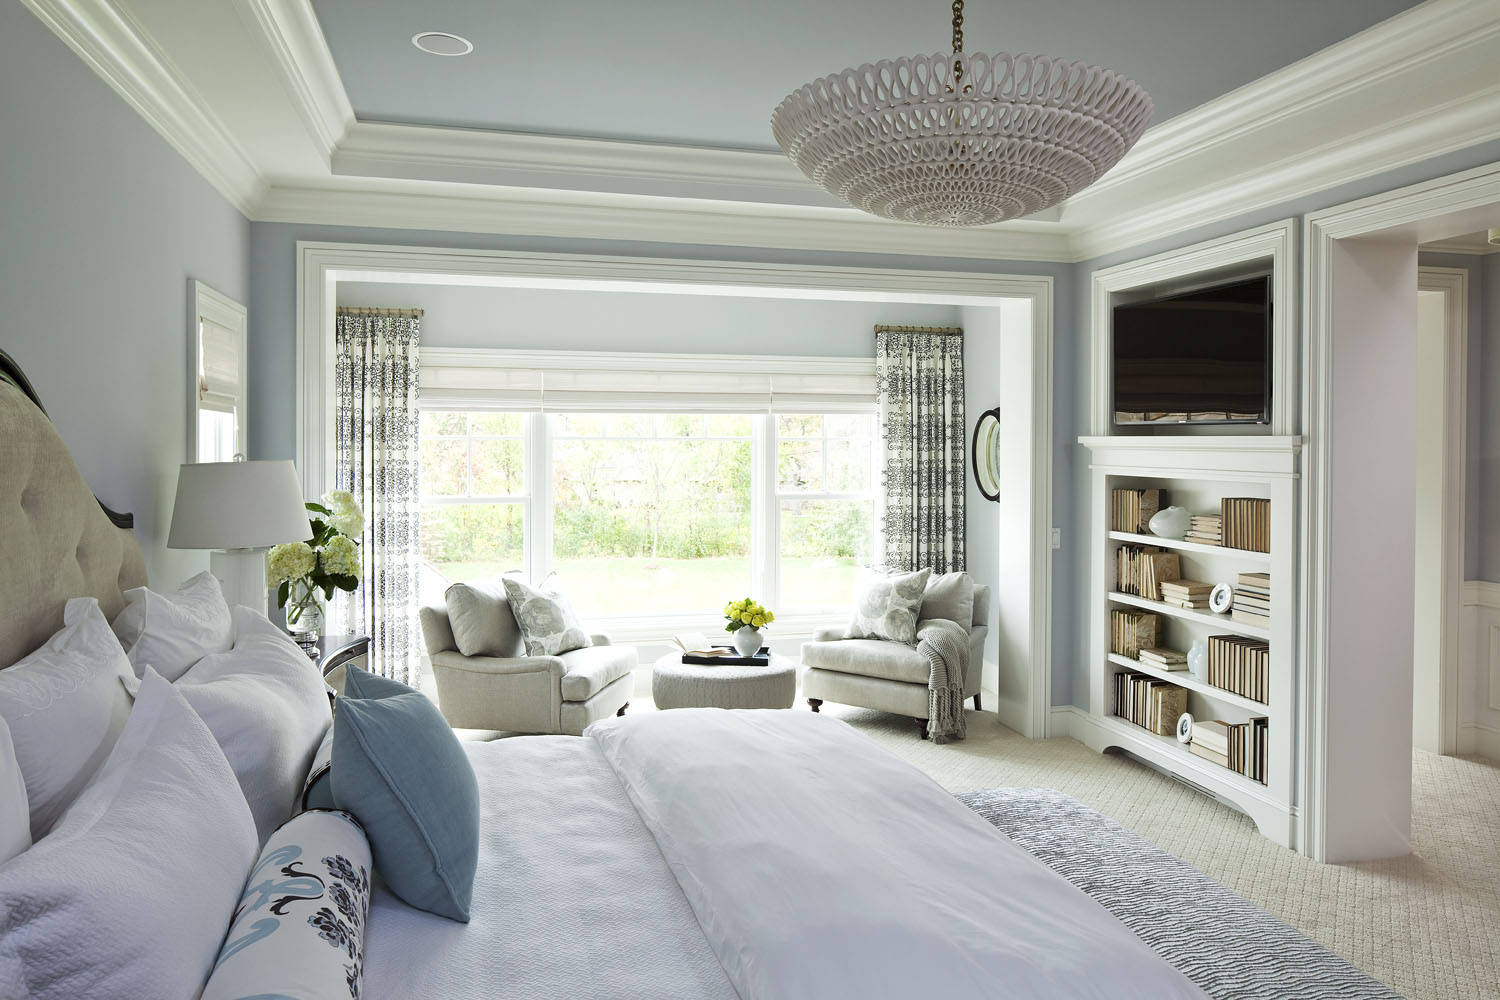 75 Beautiful Traditional Bedroom Pictures Ideas March 2021 Houzz